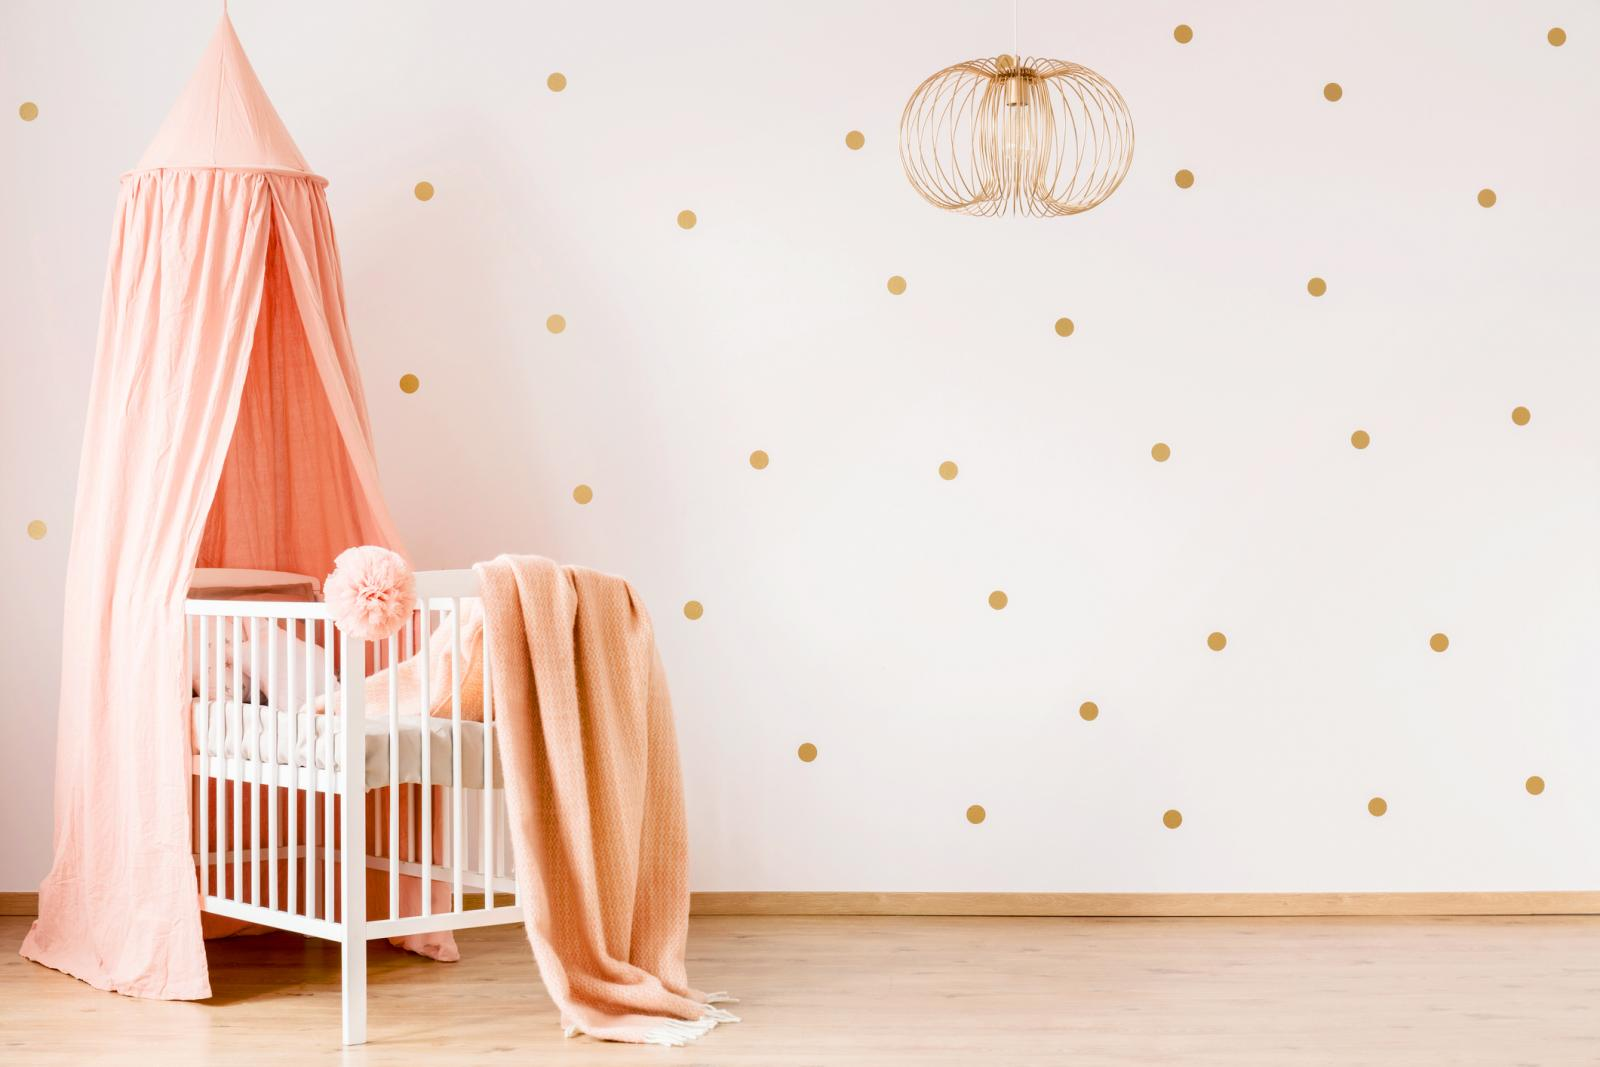 Crib Accessories For Baby Girls Lovetoknow